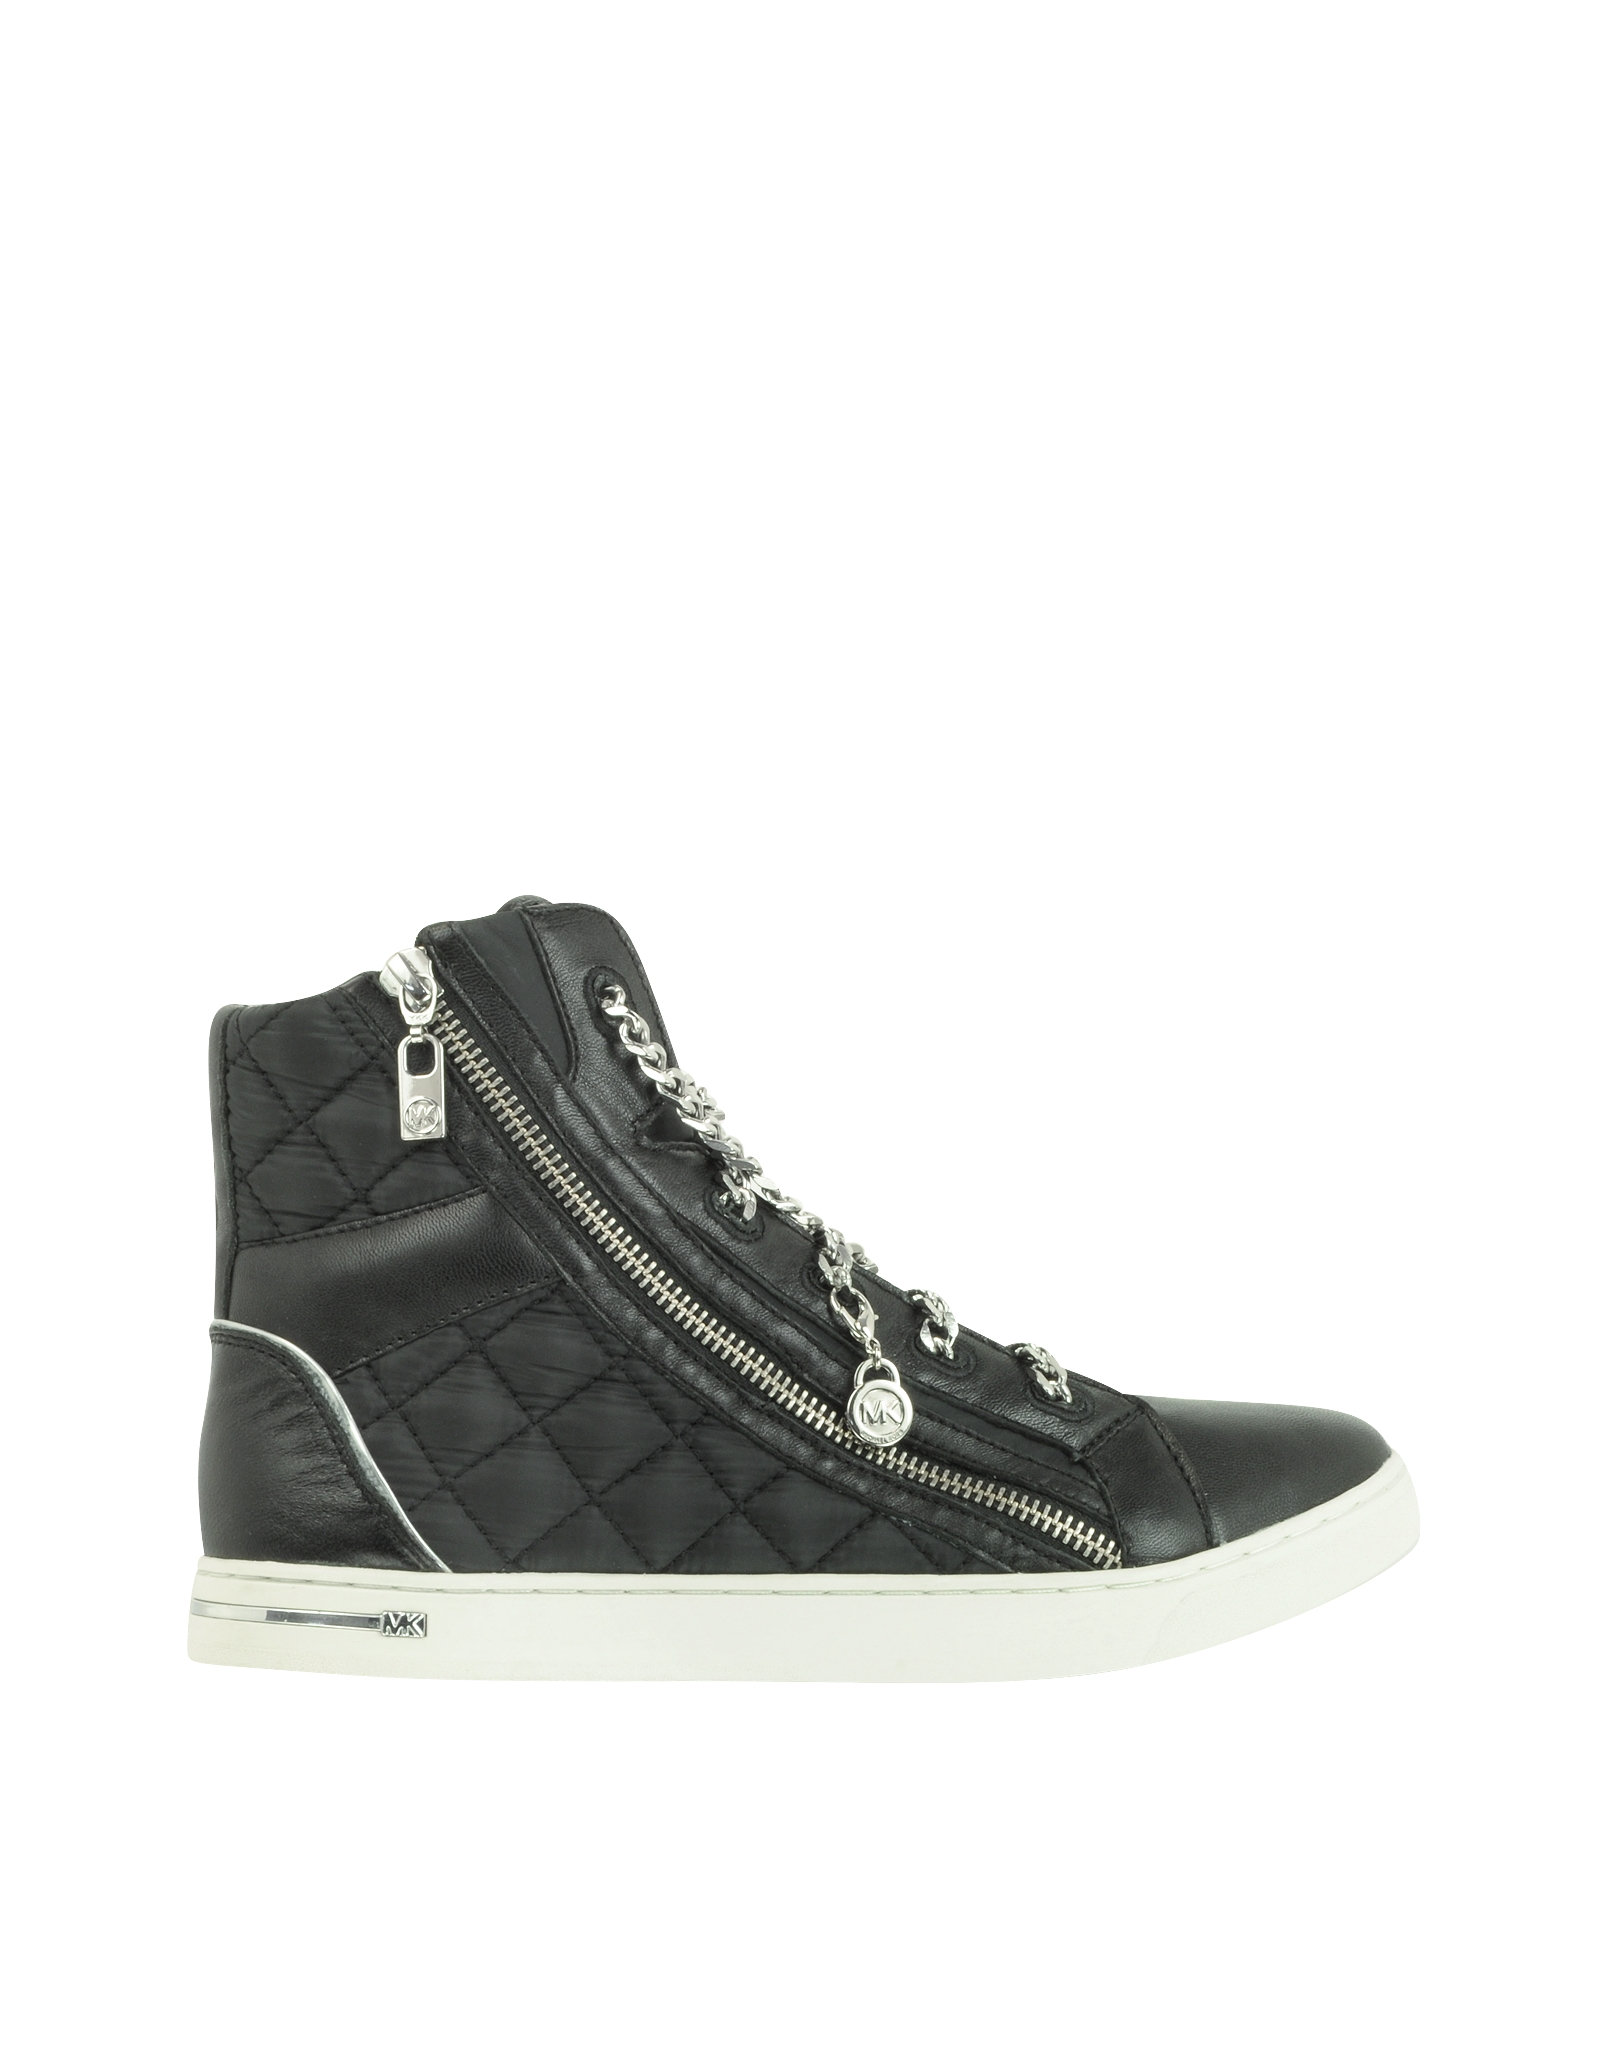 Lyst - Michael kors Urban Chain High Top Quilted Nylon Sneaker in ... : michael kors quilted sneakers - Adamdwight.com